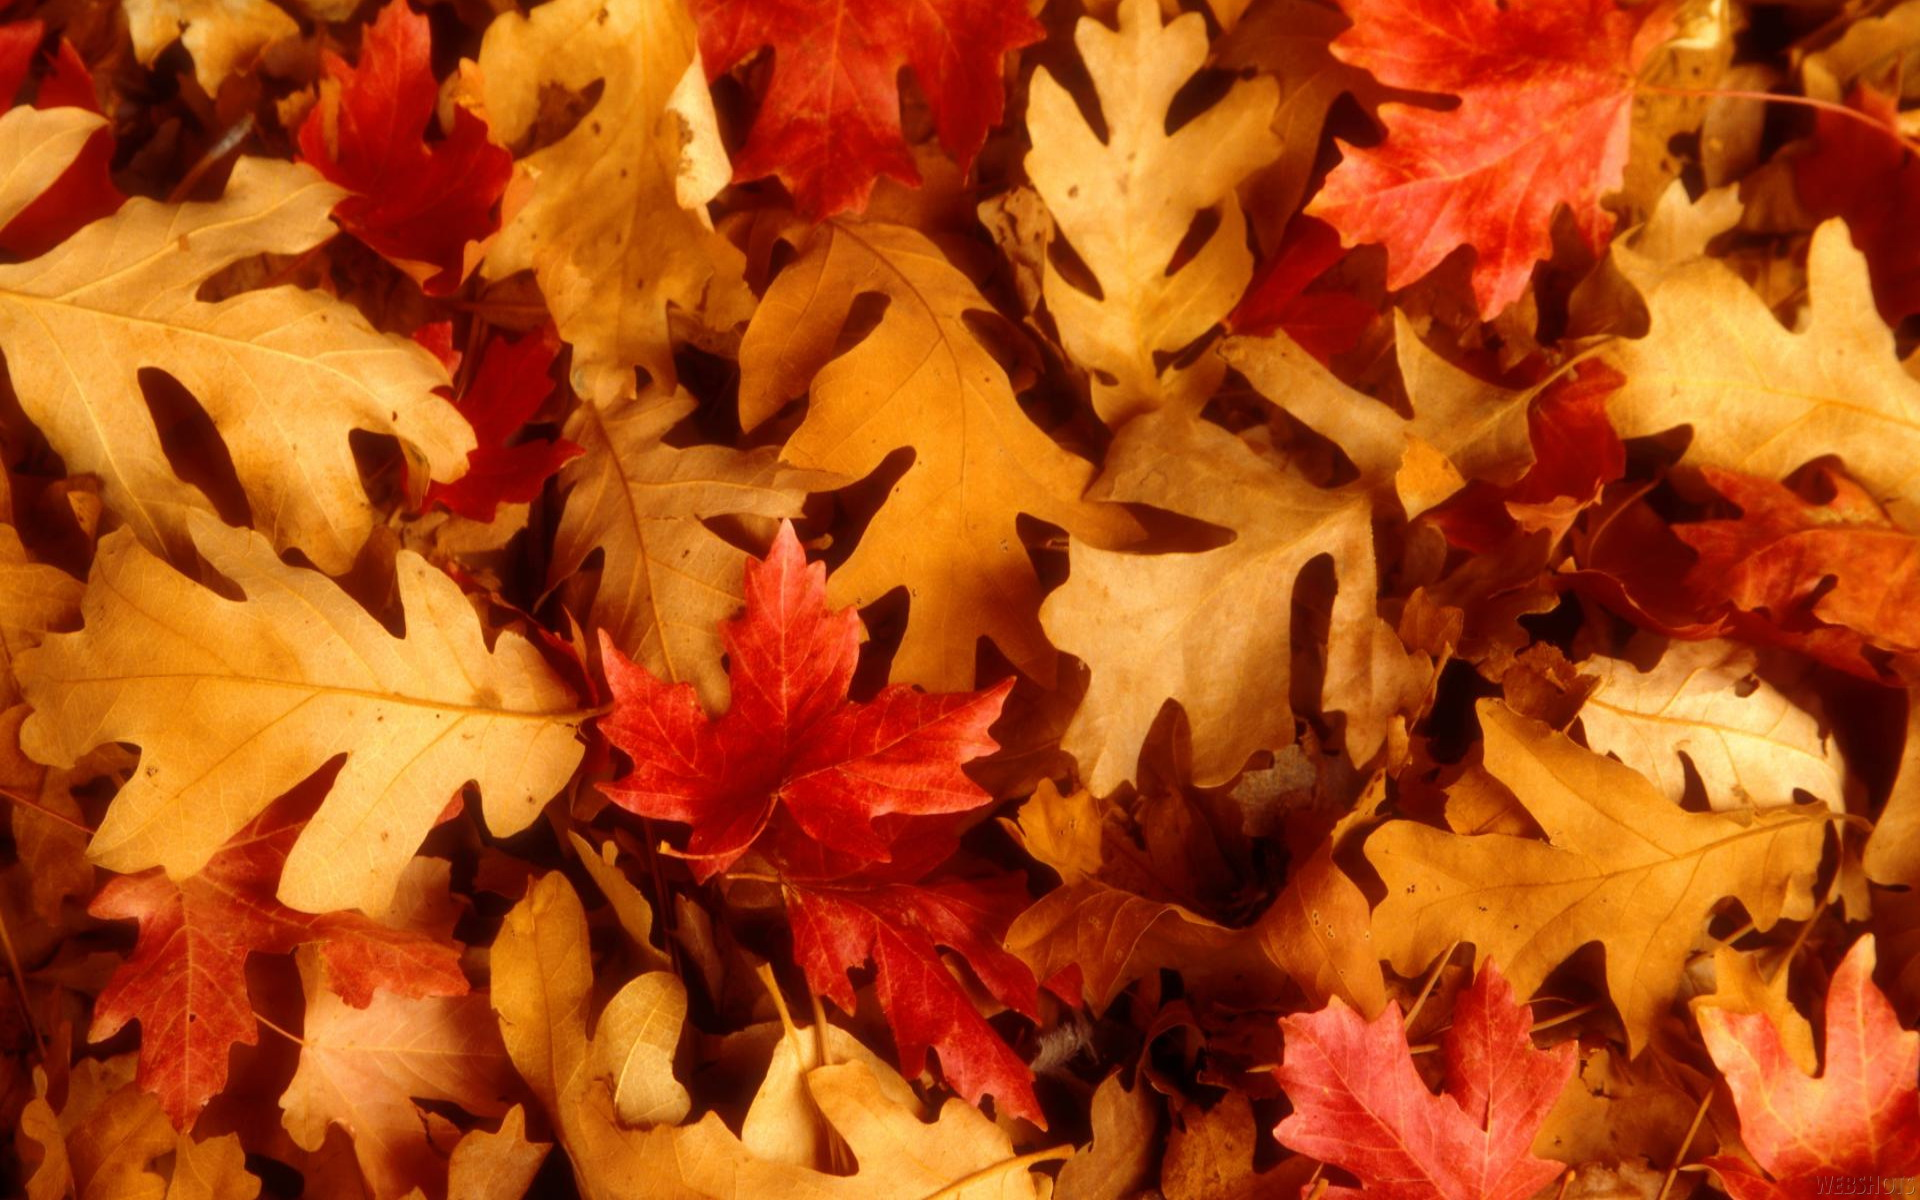 Autumn Leaves Wallpaper 1920x1200 Autumn Leaves Fallen Leaves 1920x1200